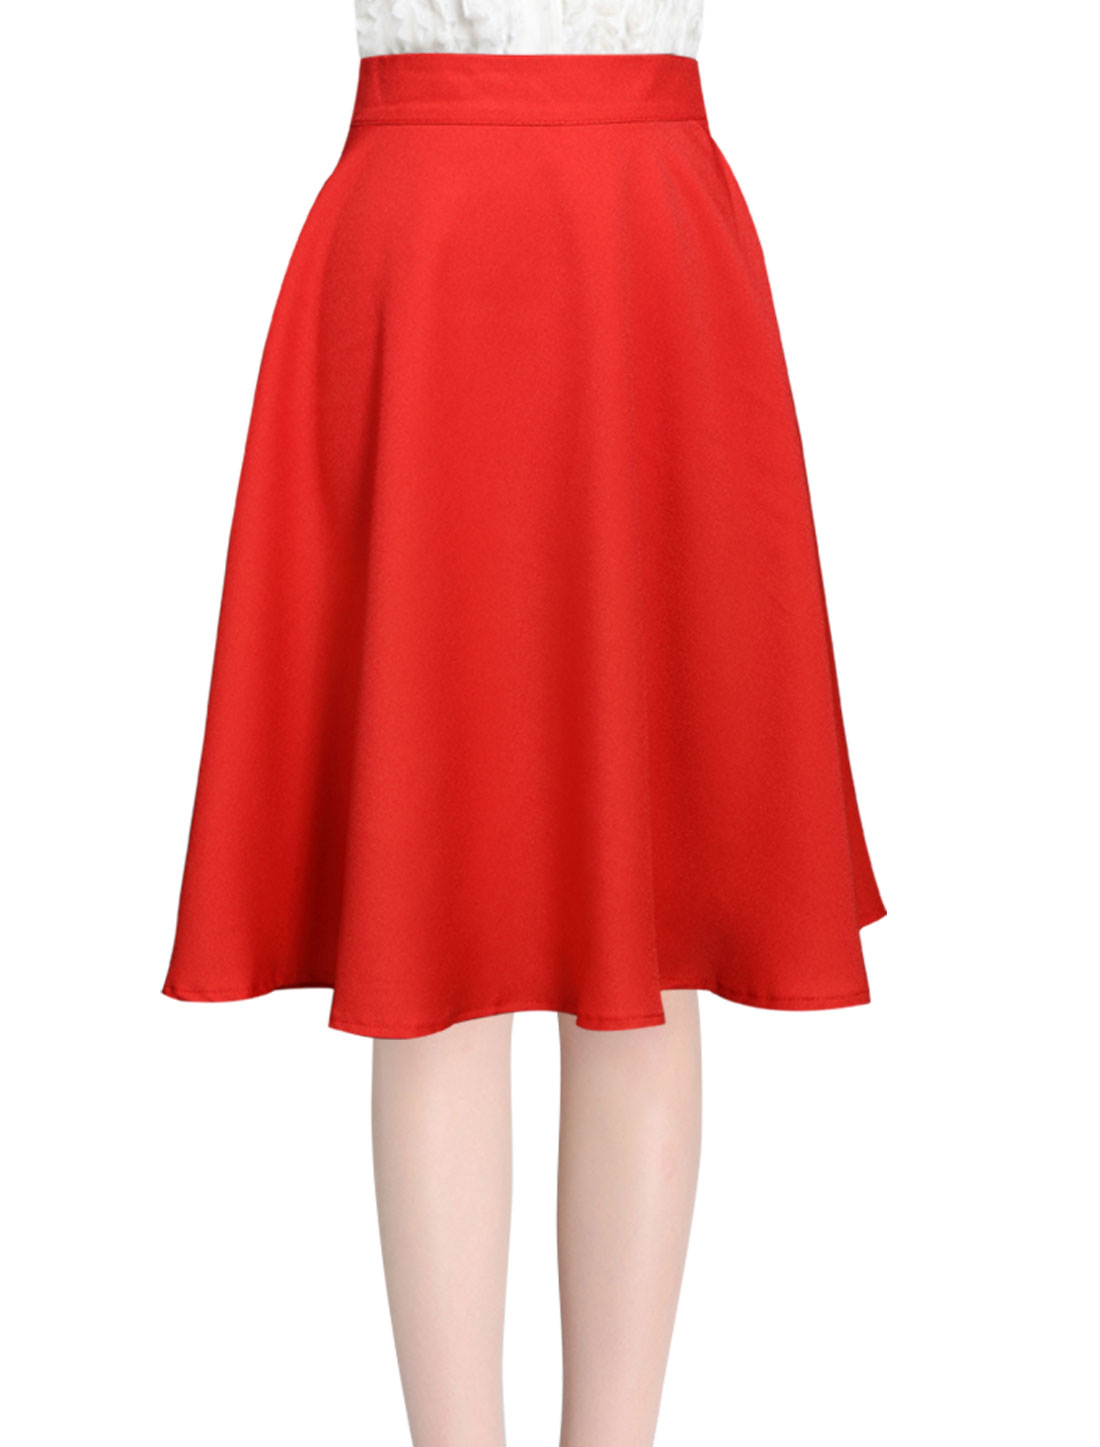 Women Unlined Knee Length Ruffled Design Fashion Full Skirt Red L